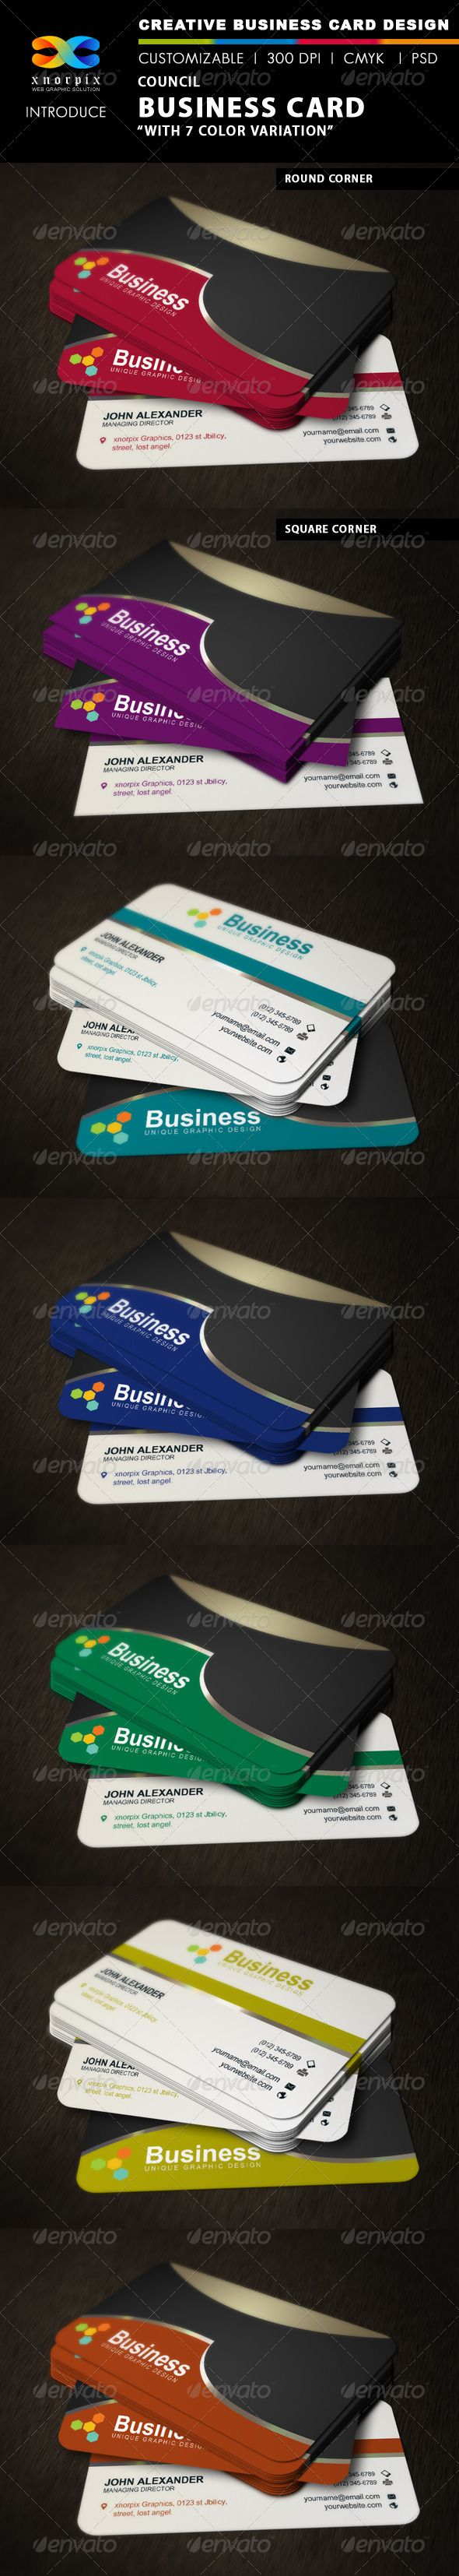 Color printing bu - Council Business Card